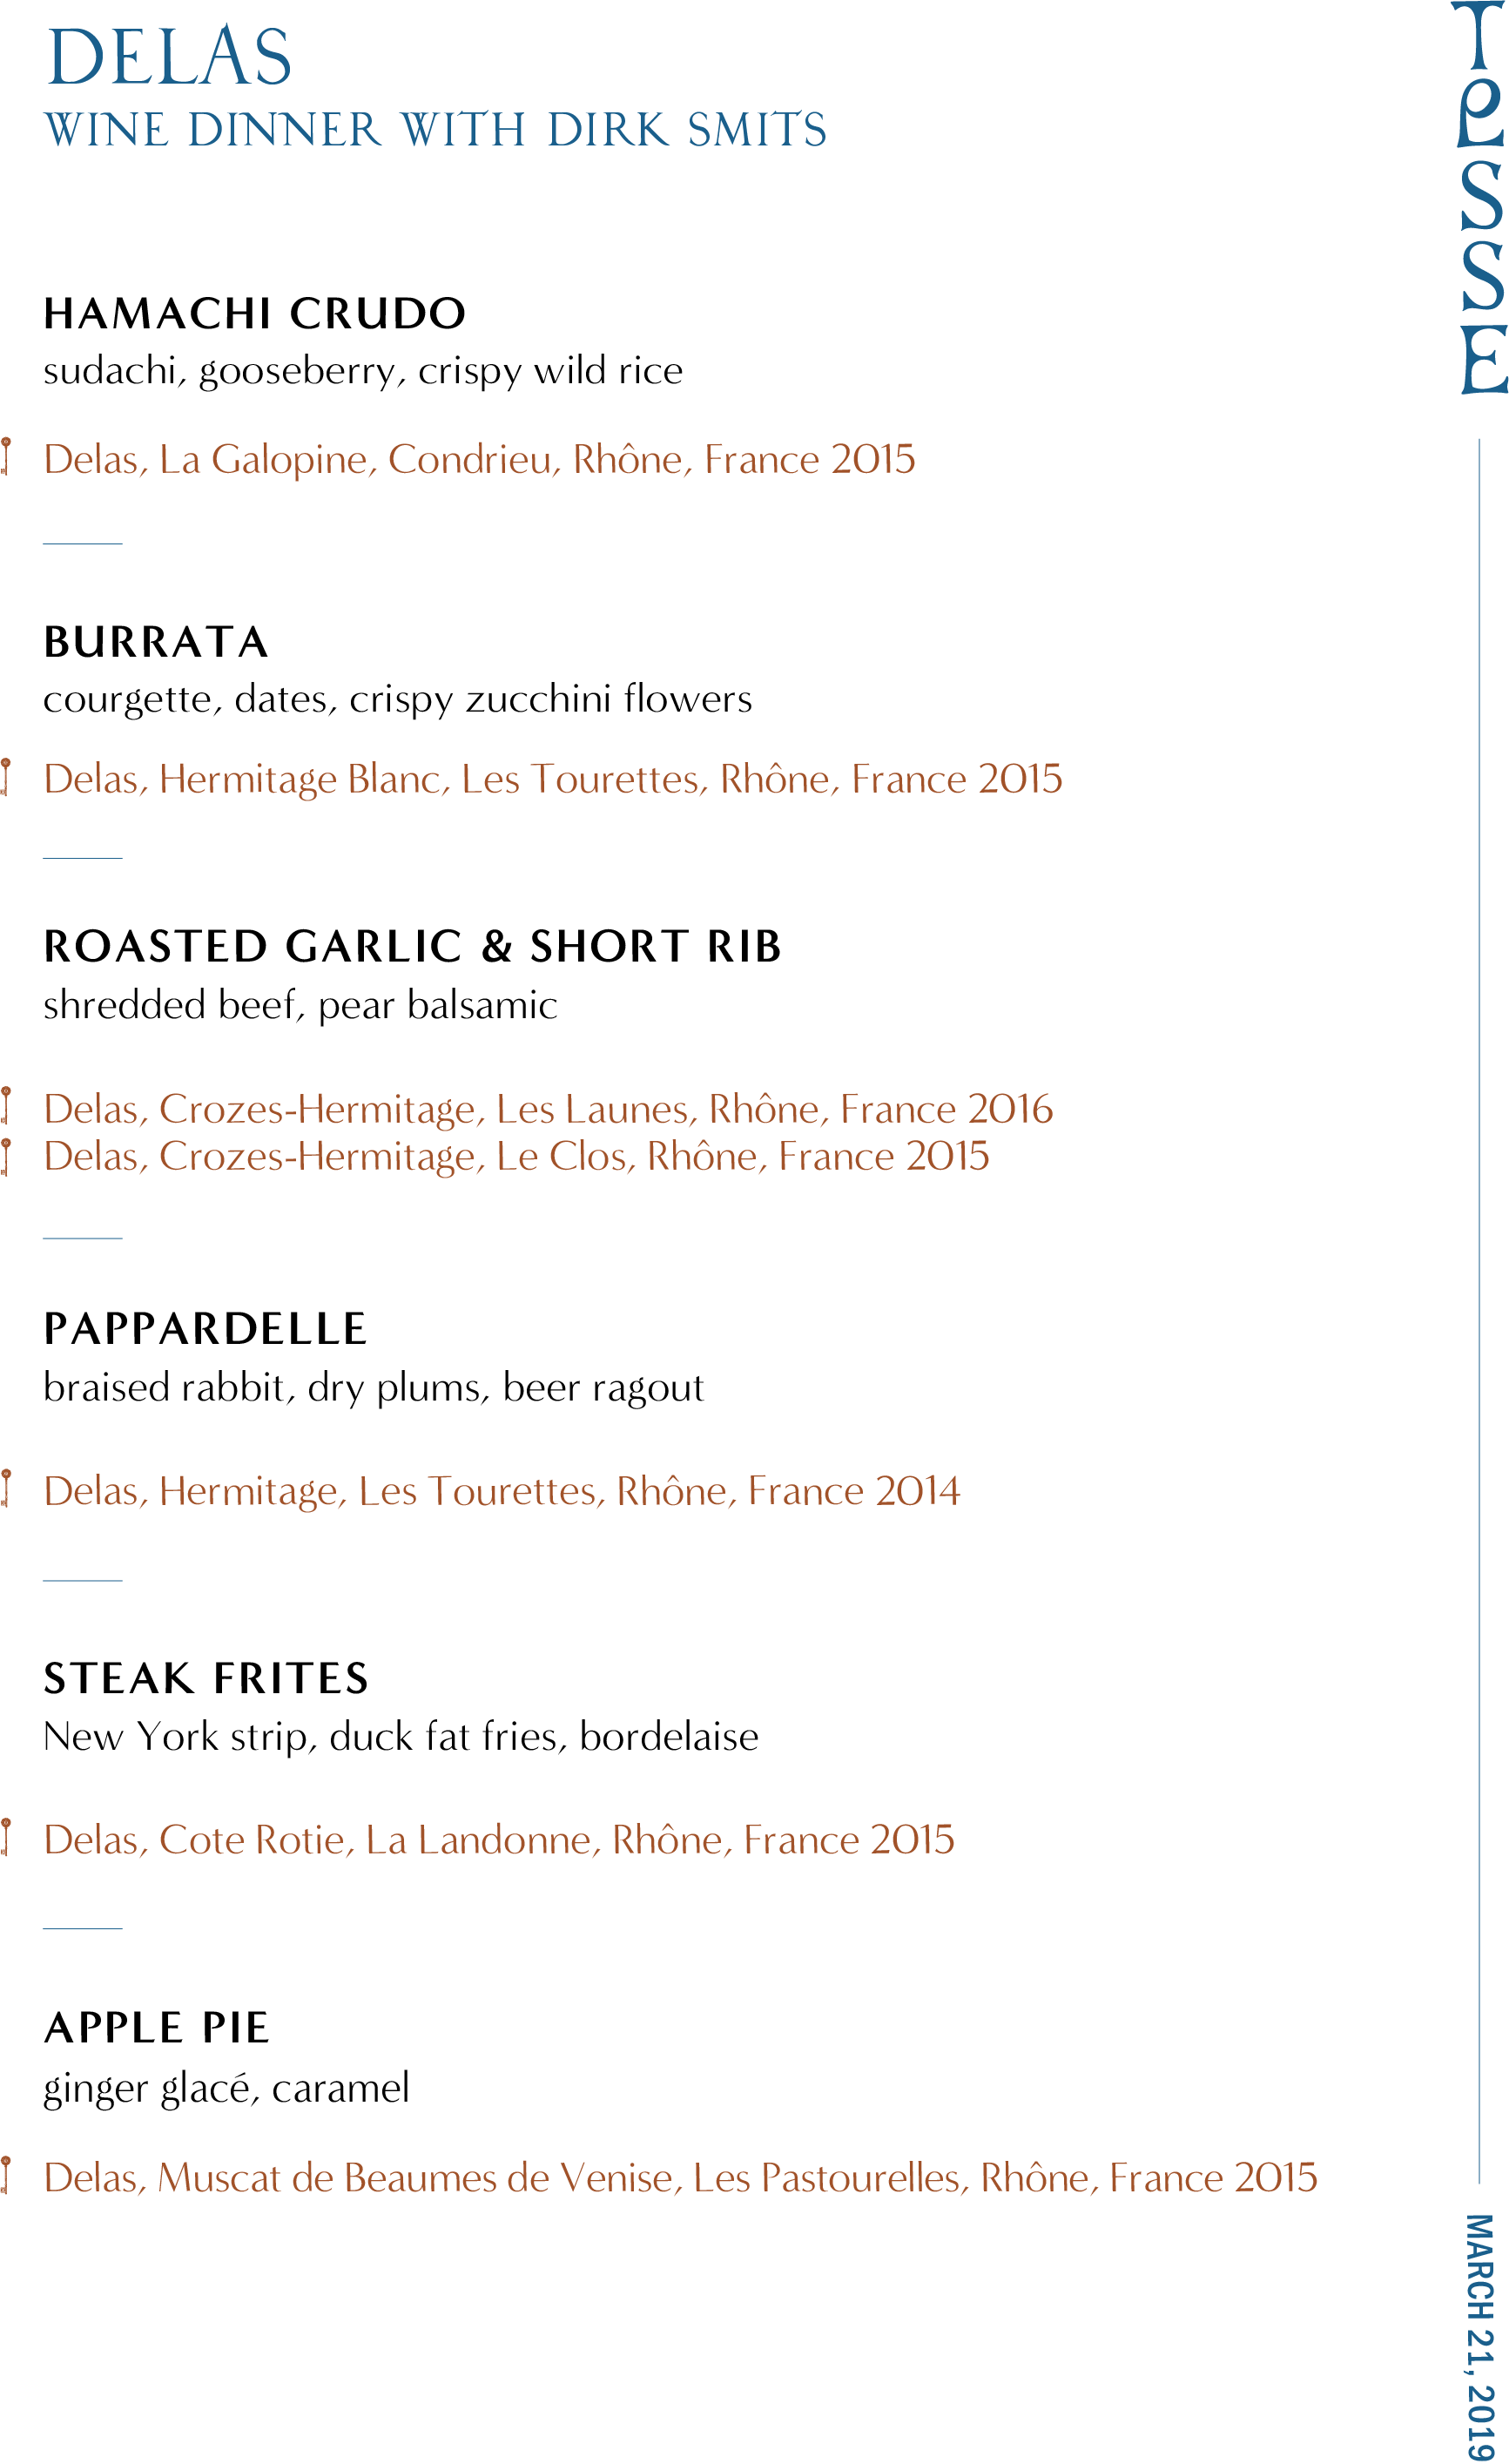 Delas Wine Dinner Menu ADV.png